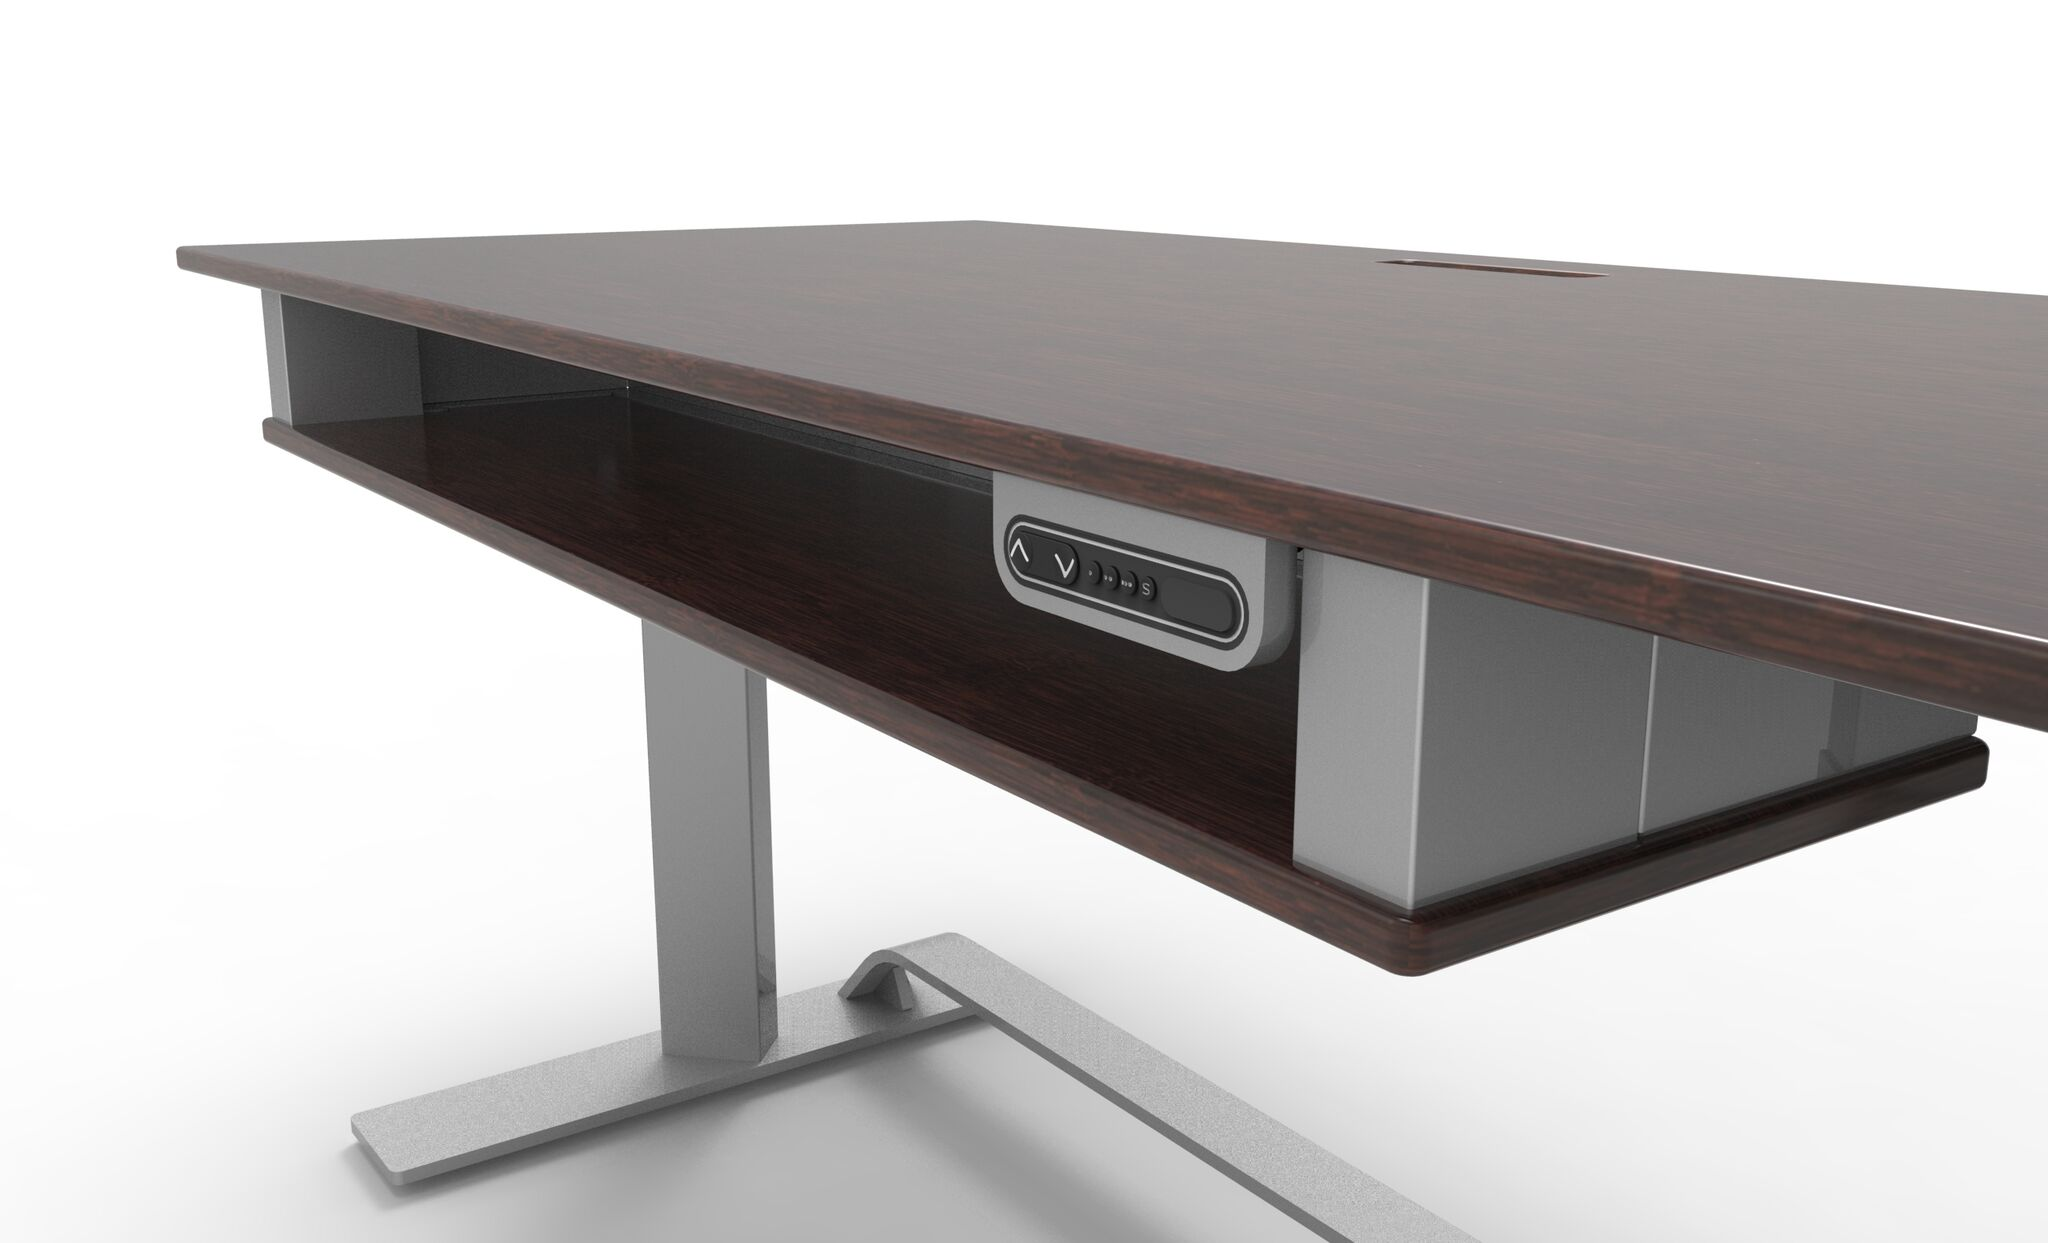 wire table cable outlet hole side desk in cover electrical covers modules most ribbon computer with for desks blue power grommets grommet